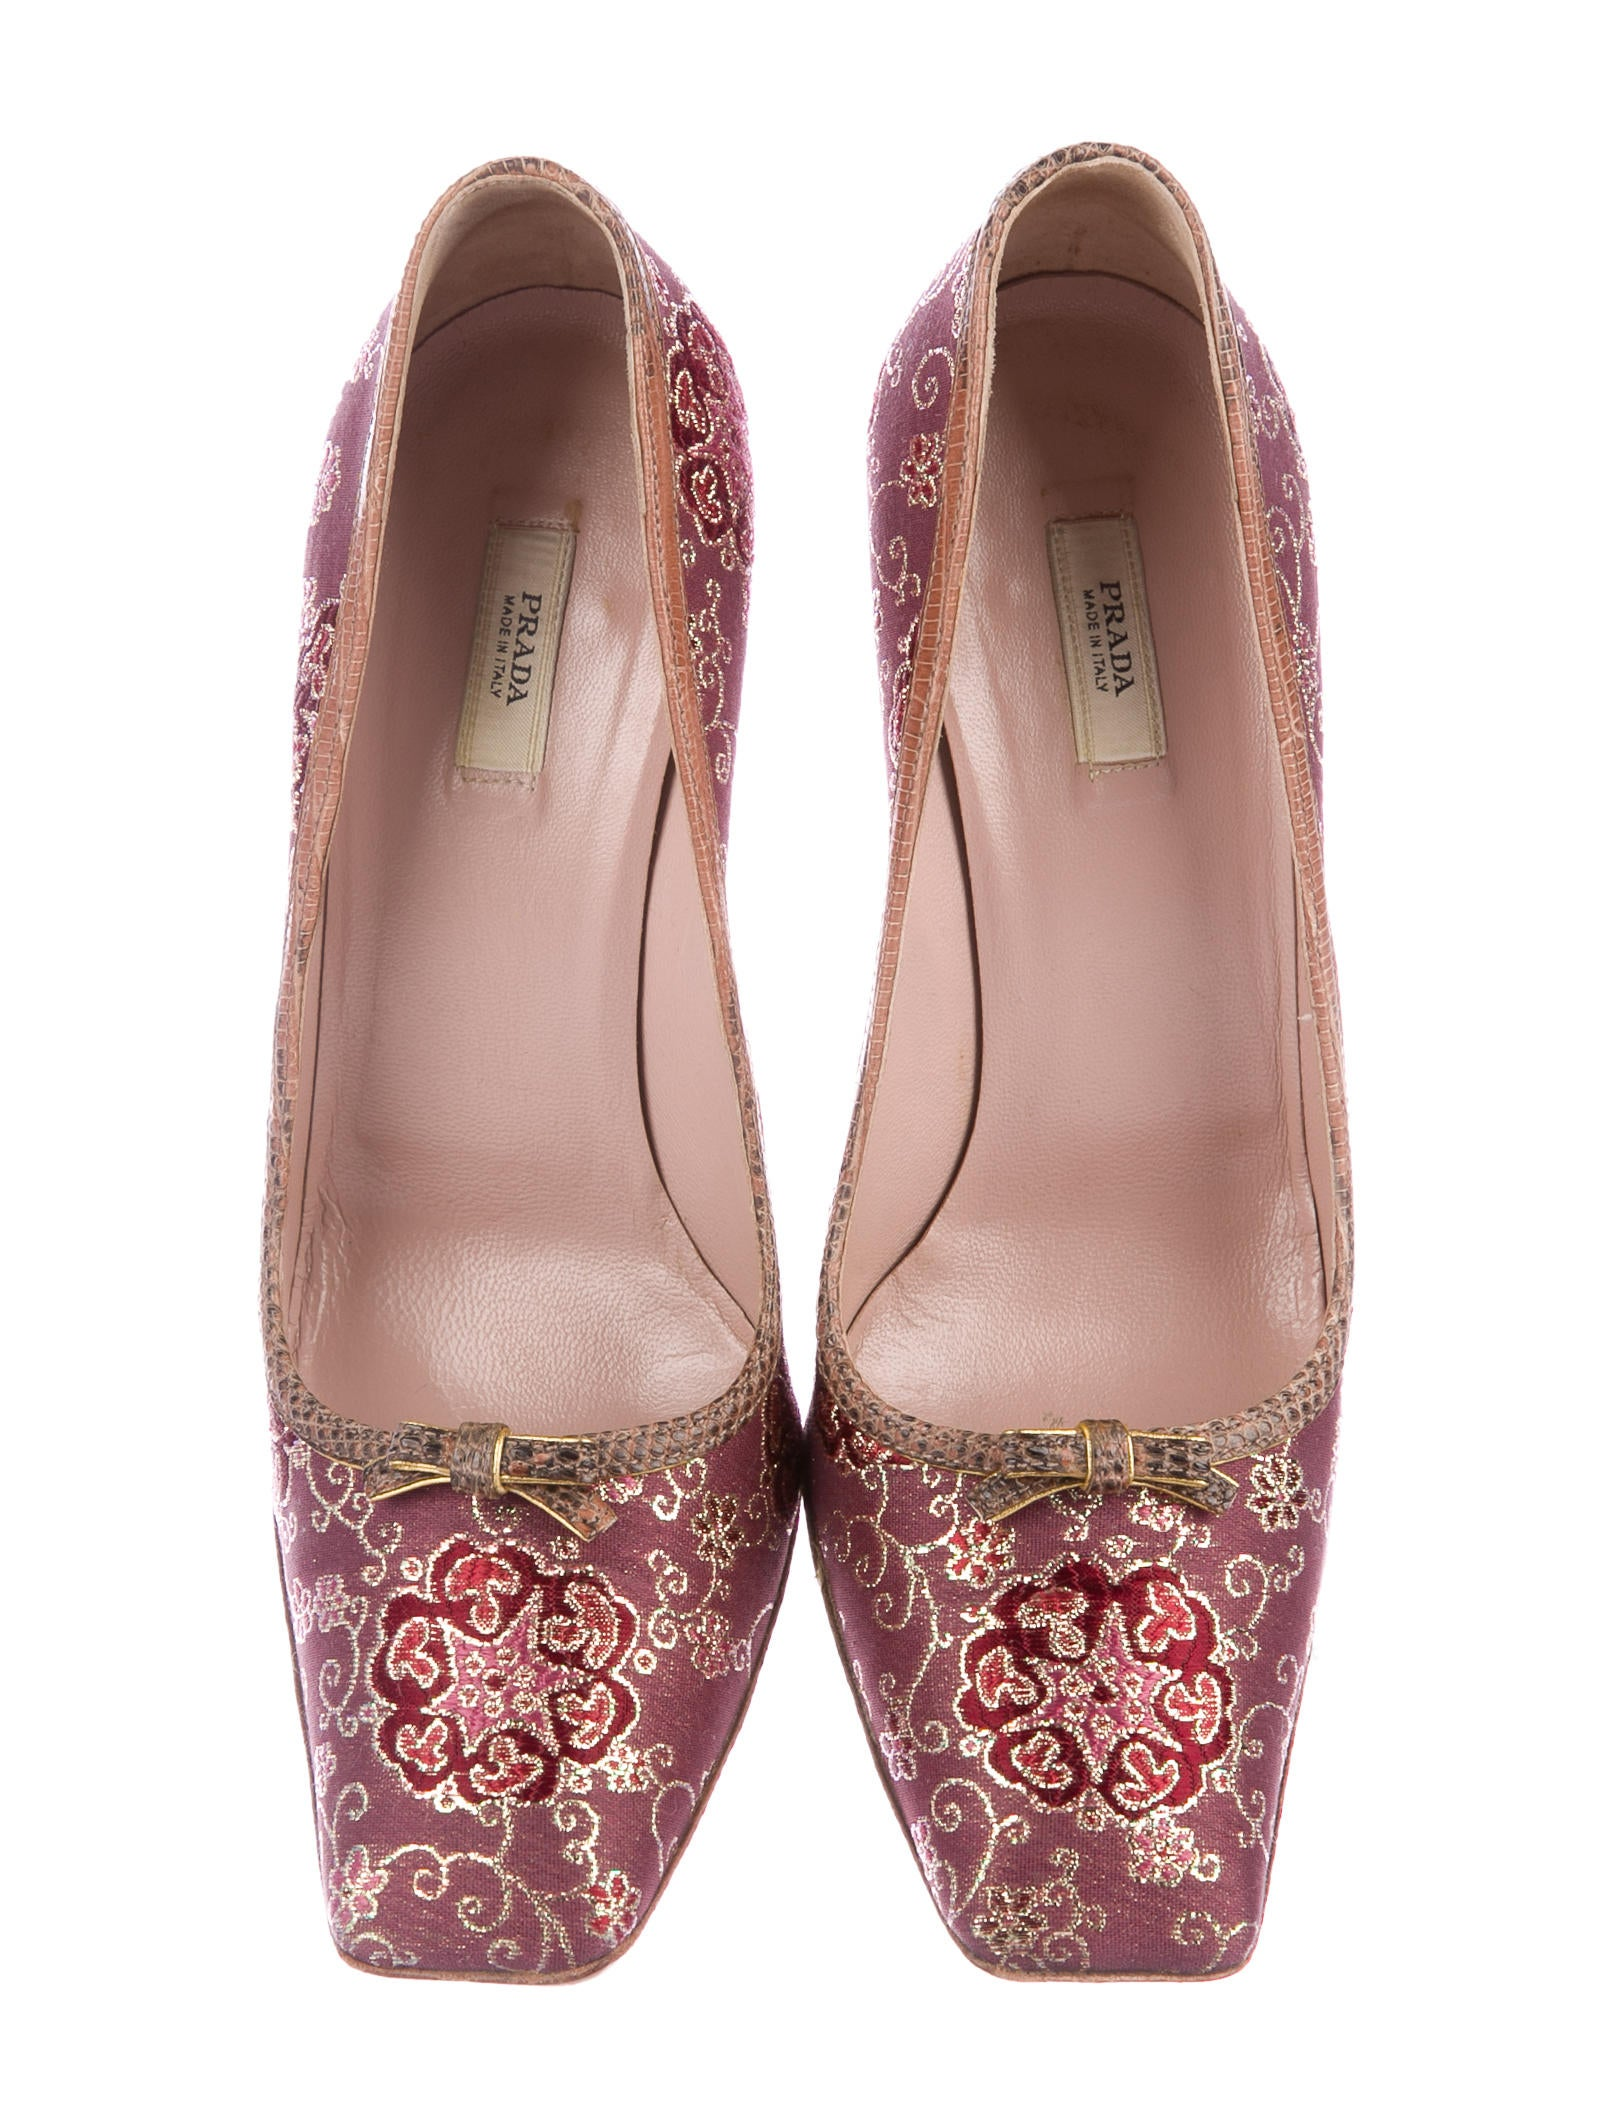 Prada Embroidered Square-Toe Pumps free shipping sale online cheap sale lowest price visit new cheap online fast delivery 8Ccycgy